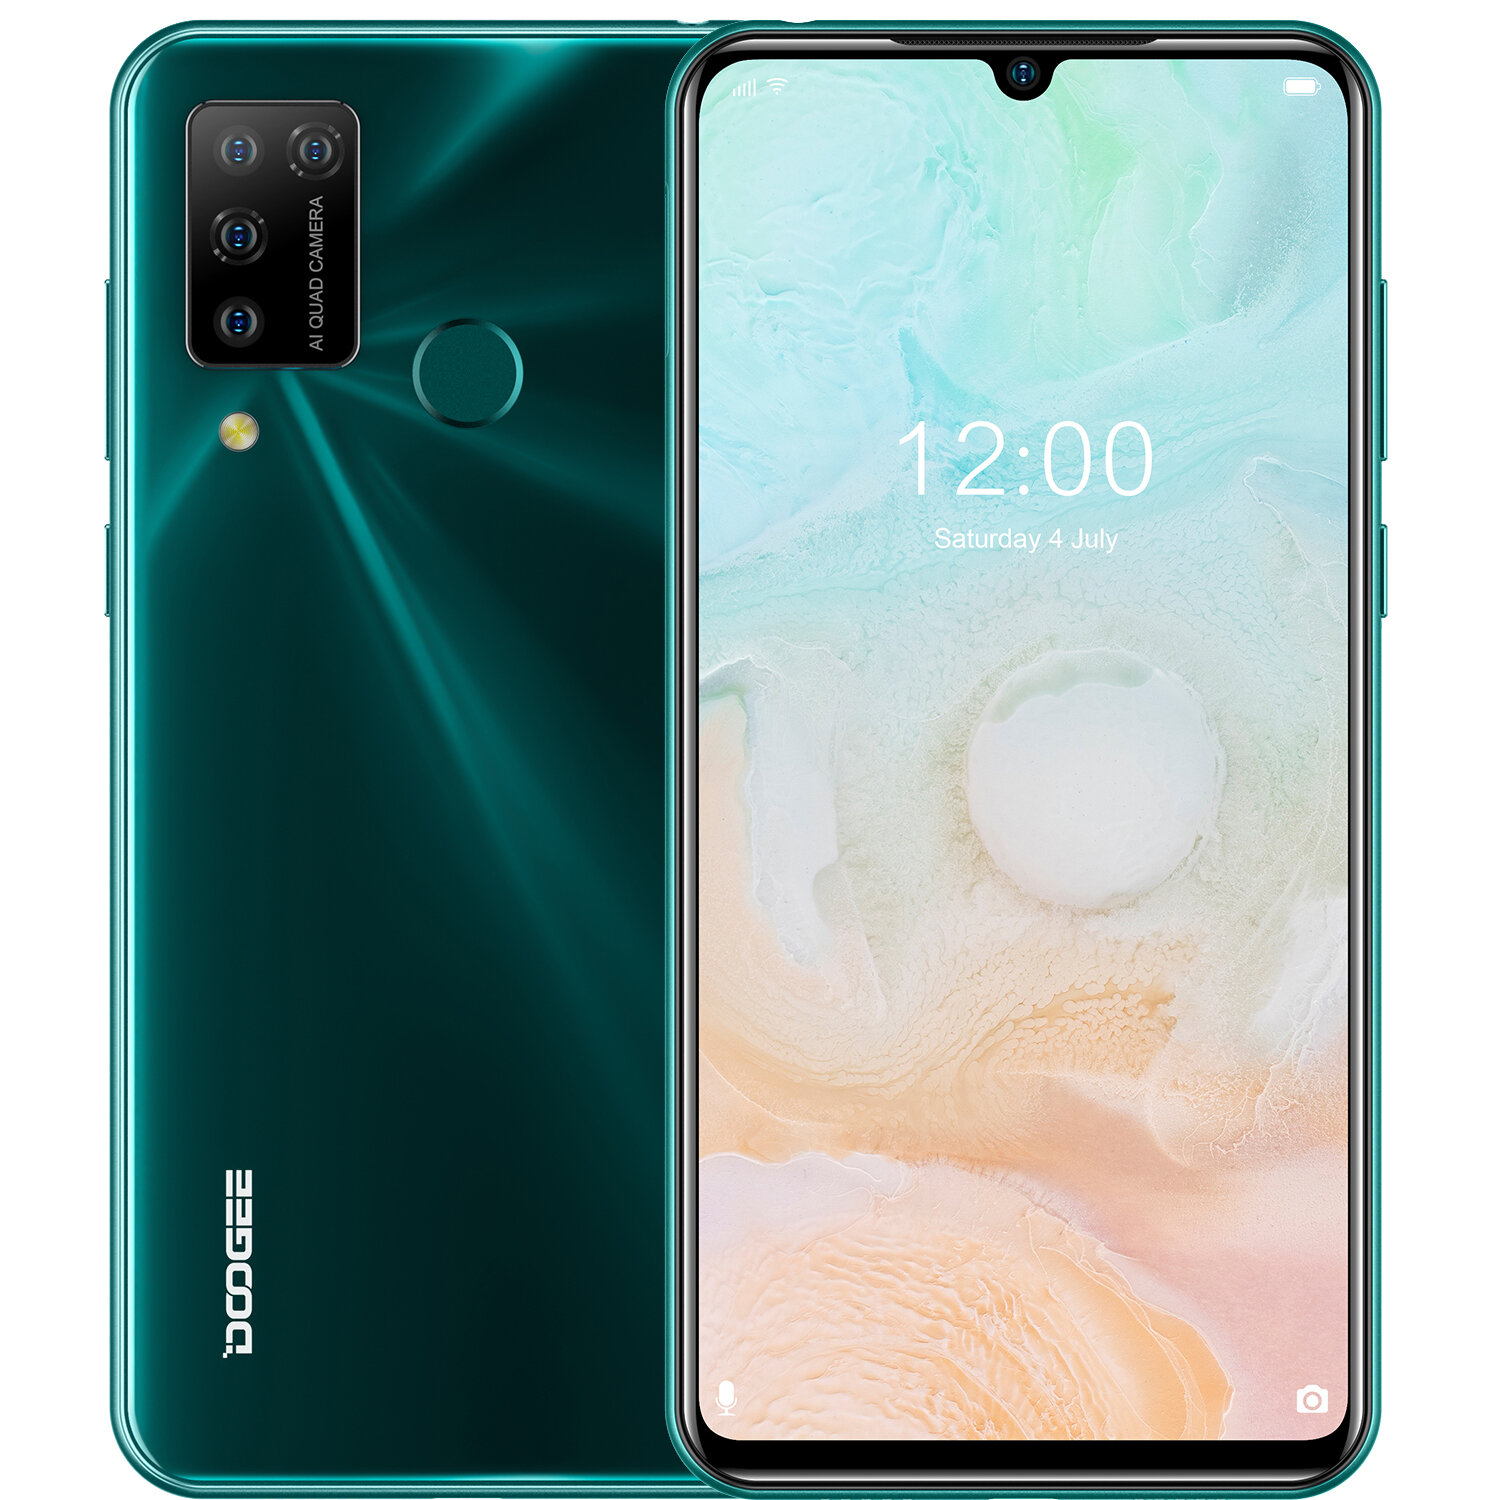 DOOGEE N20 Pro 6.3 inch FHD+ Waterdrop Display Android 10 4400mAh 16MP Quad Rear Camera 6GB 128GB Helio P60 Octa Core 4G Smartphone - Green